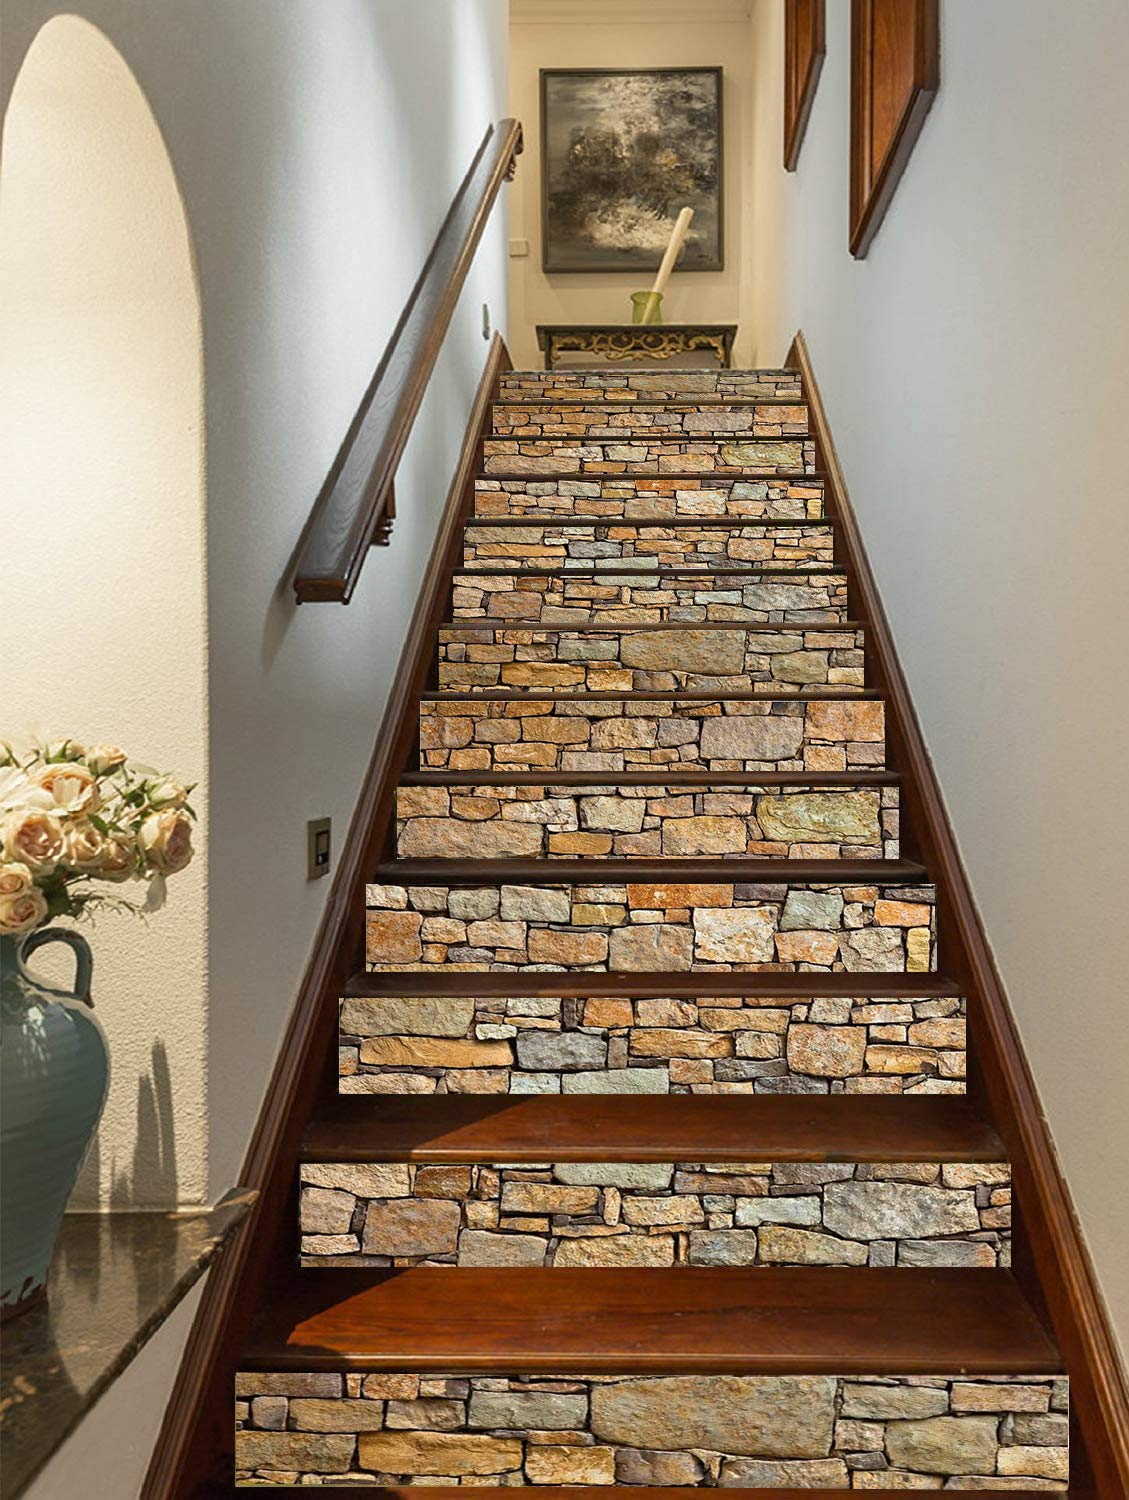 3d brick stair stickers decals stone staircase decals removable tile stair risers decals decor peel and stick wallpaper decals for stair 13 pcs set